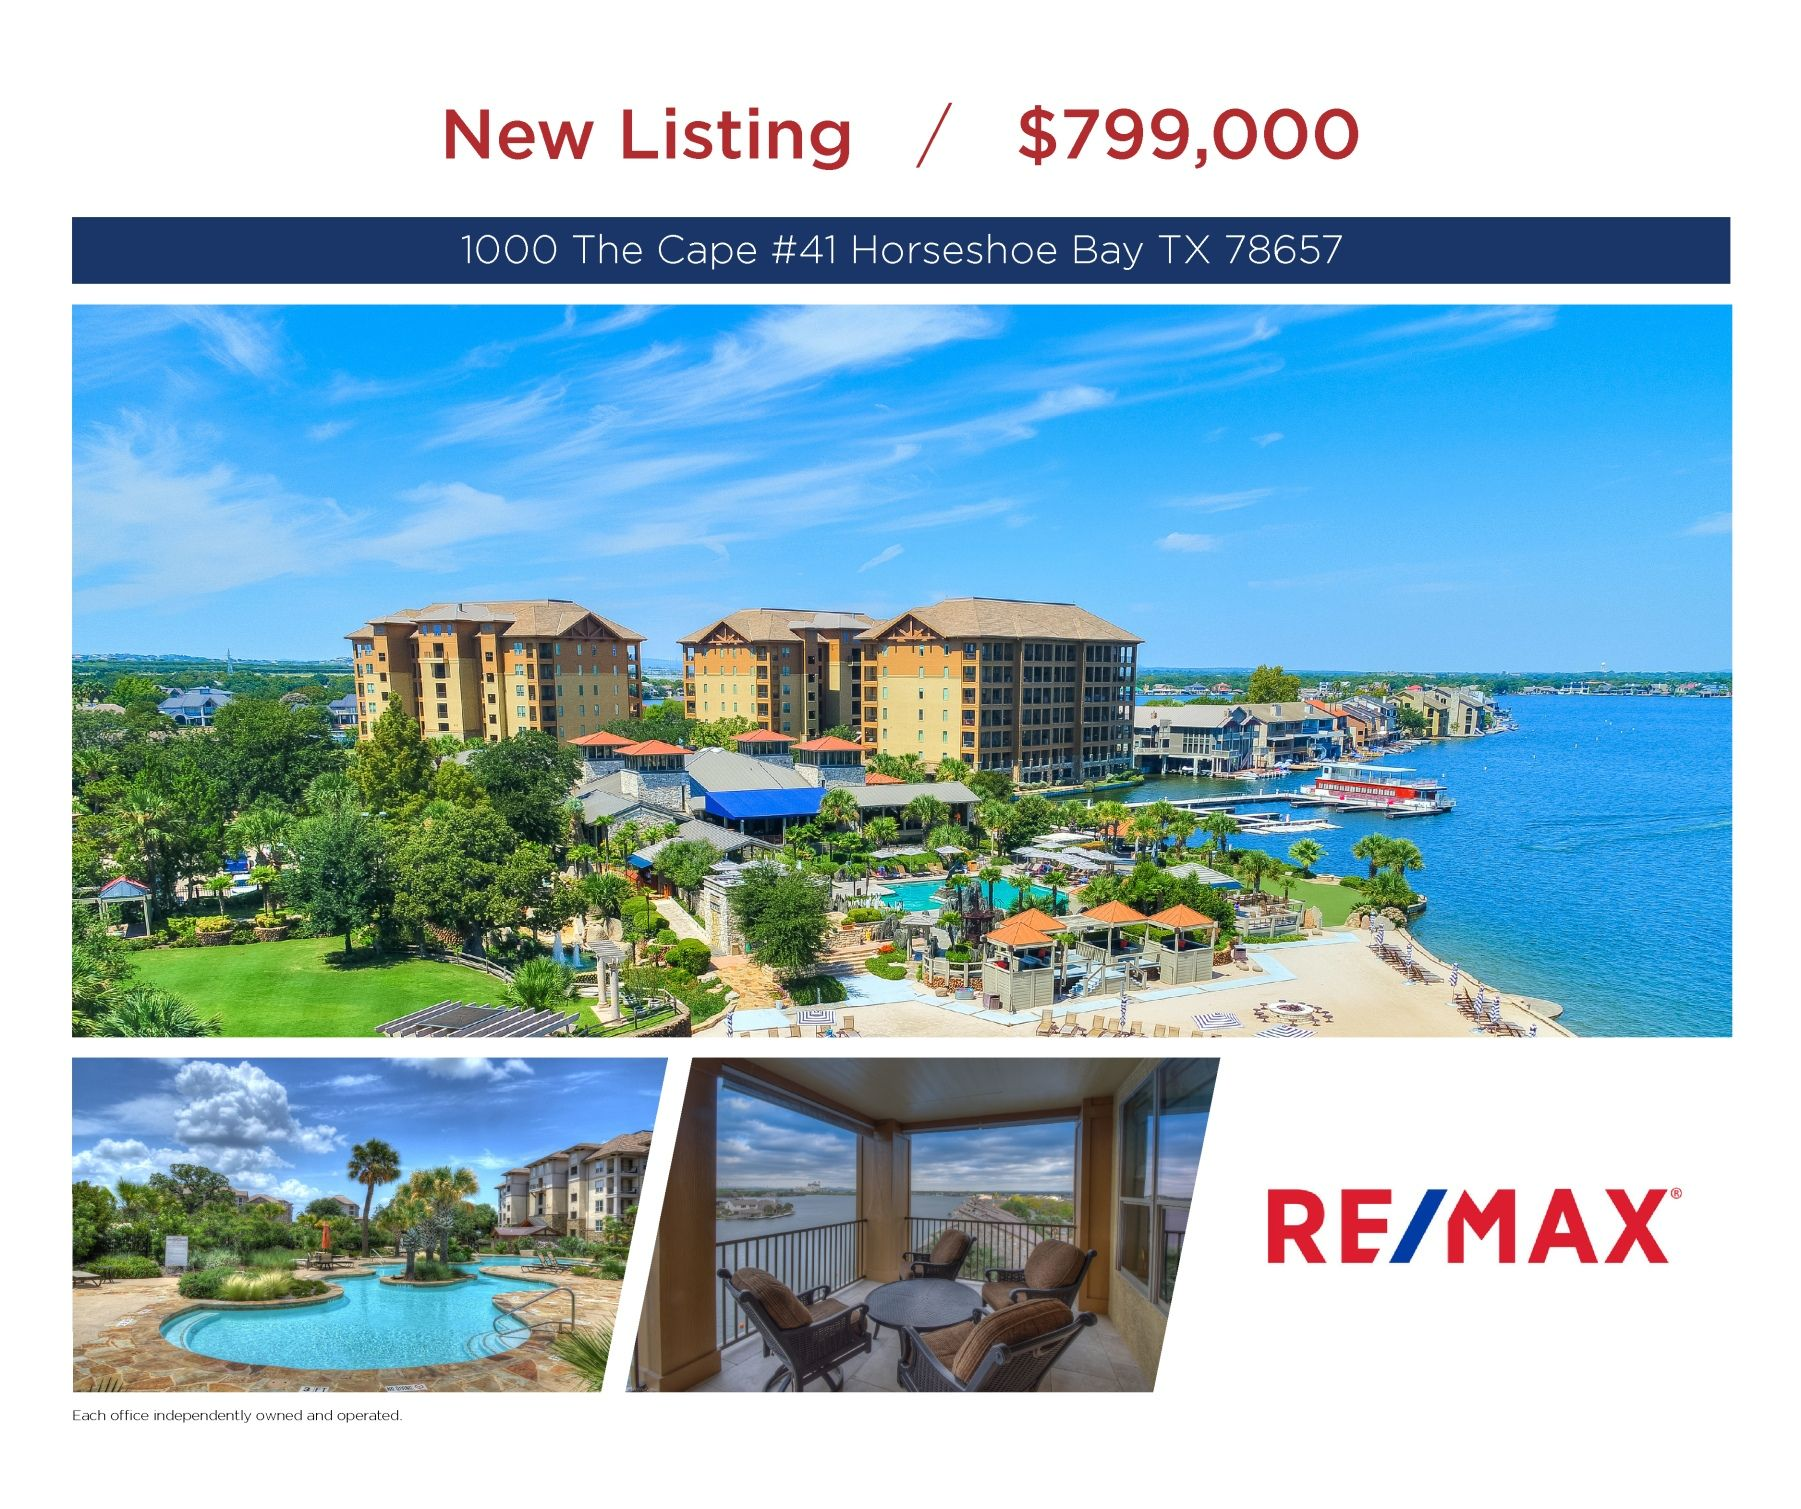 Have it all in the waters of horseshoe bay condo private